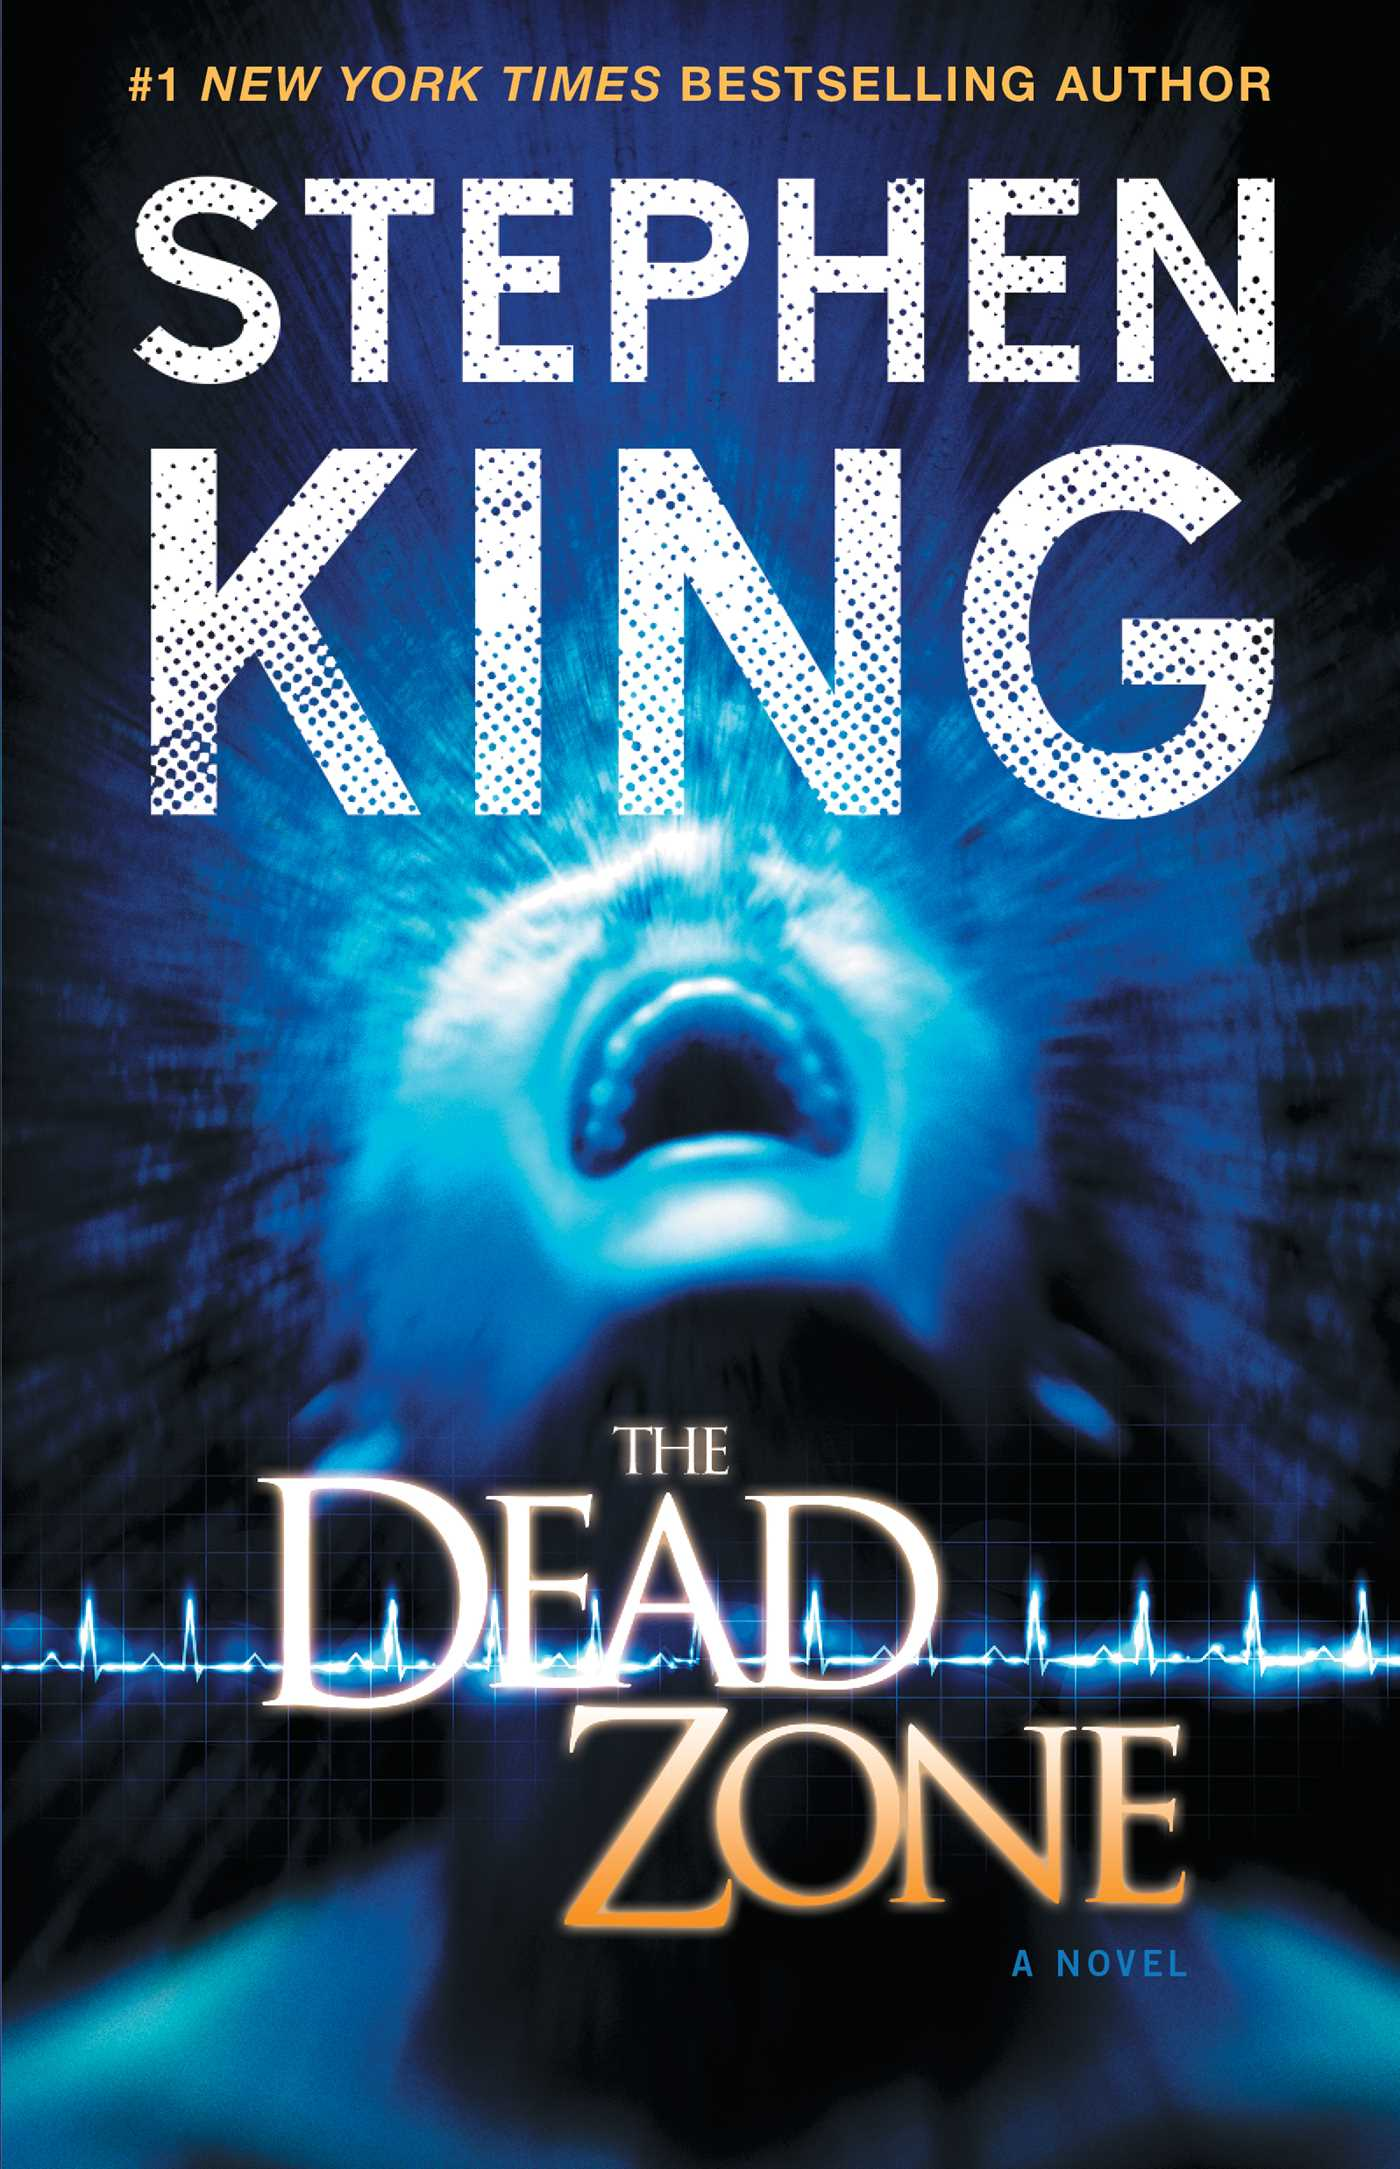 Book Cover Art Zone : The dead zone book by stephen king official publisher